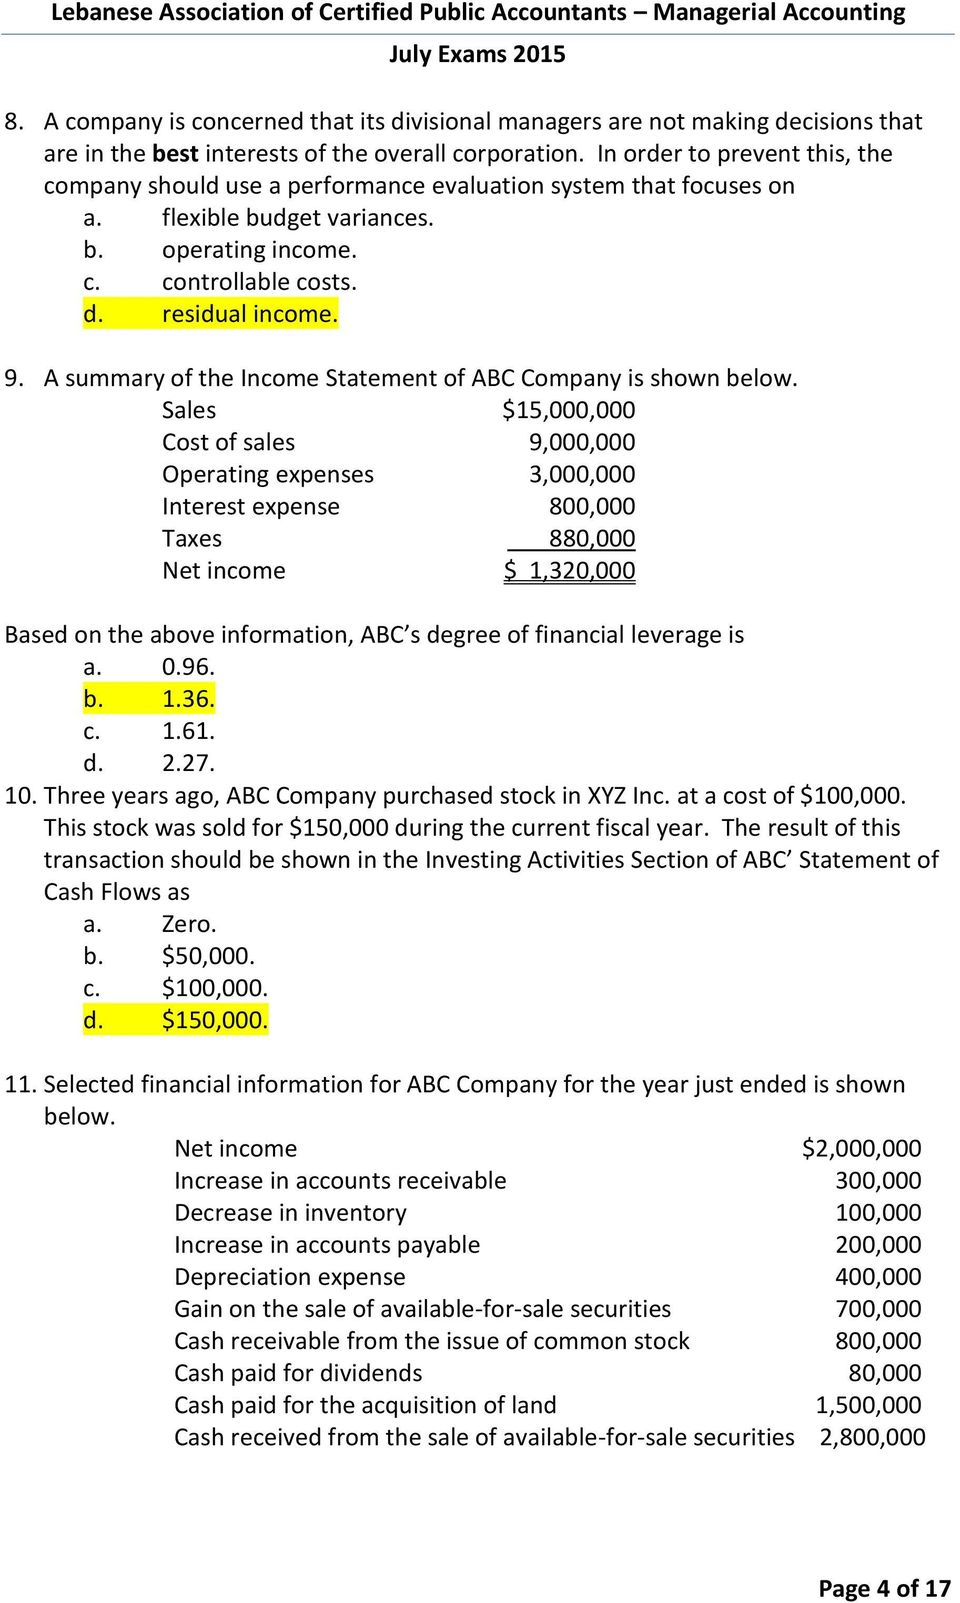 A summary of the Income Statement of ABC Company is shown below.